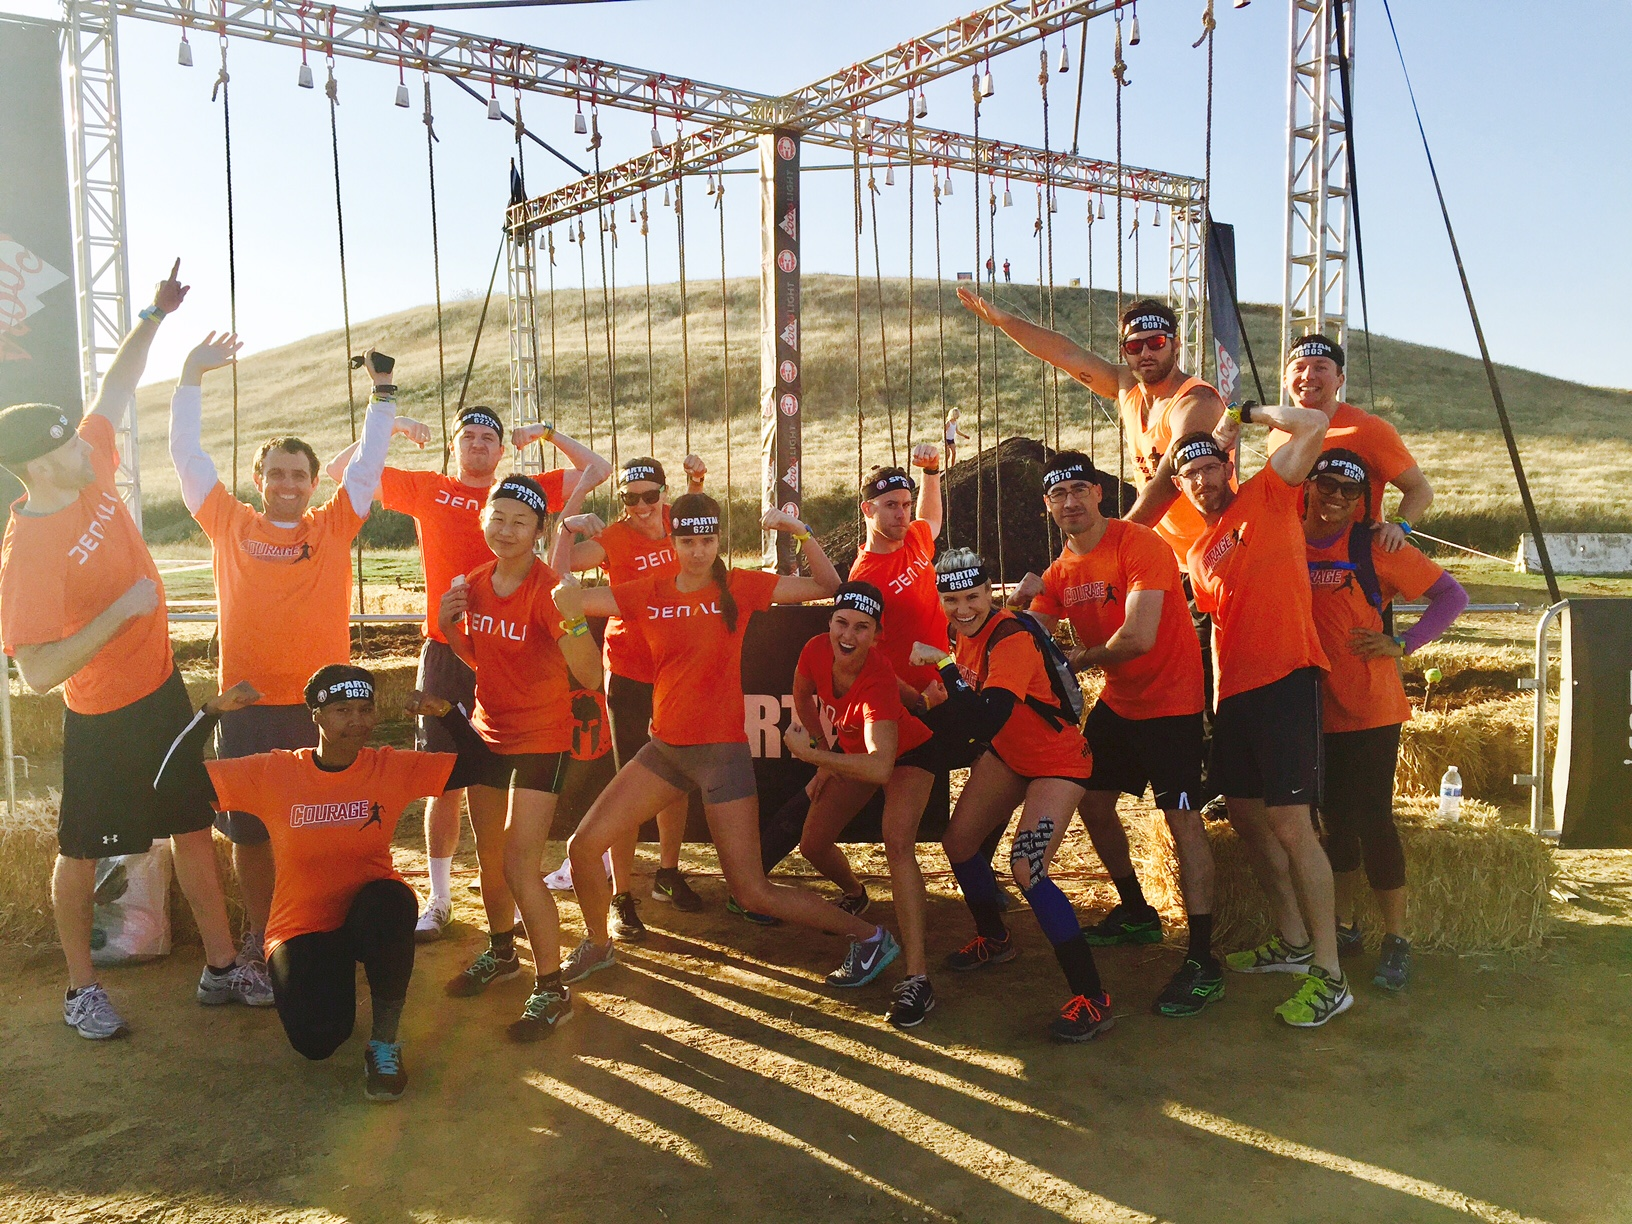 Courage Performance, Spartan race